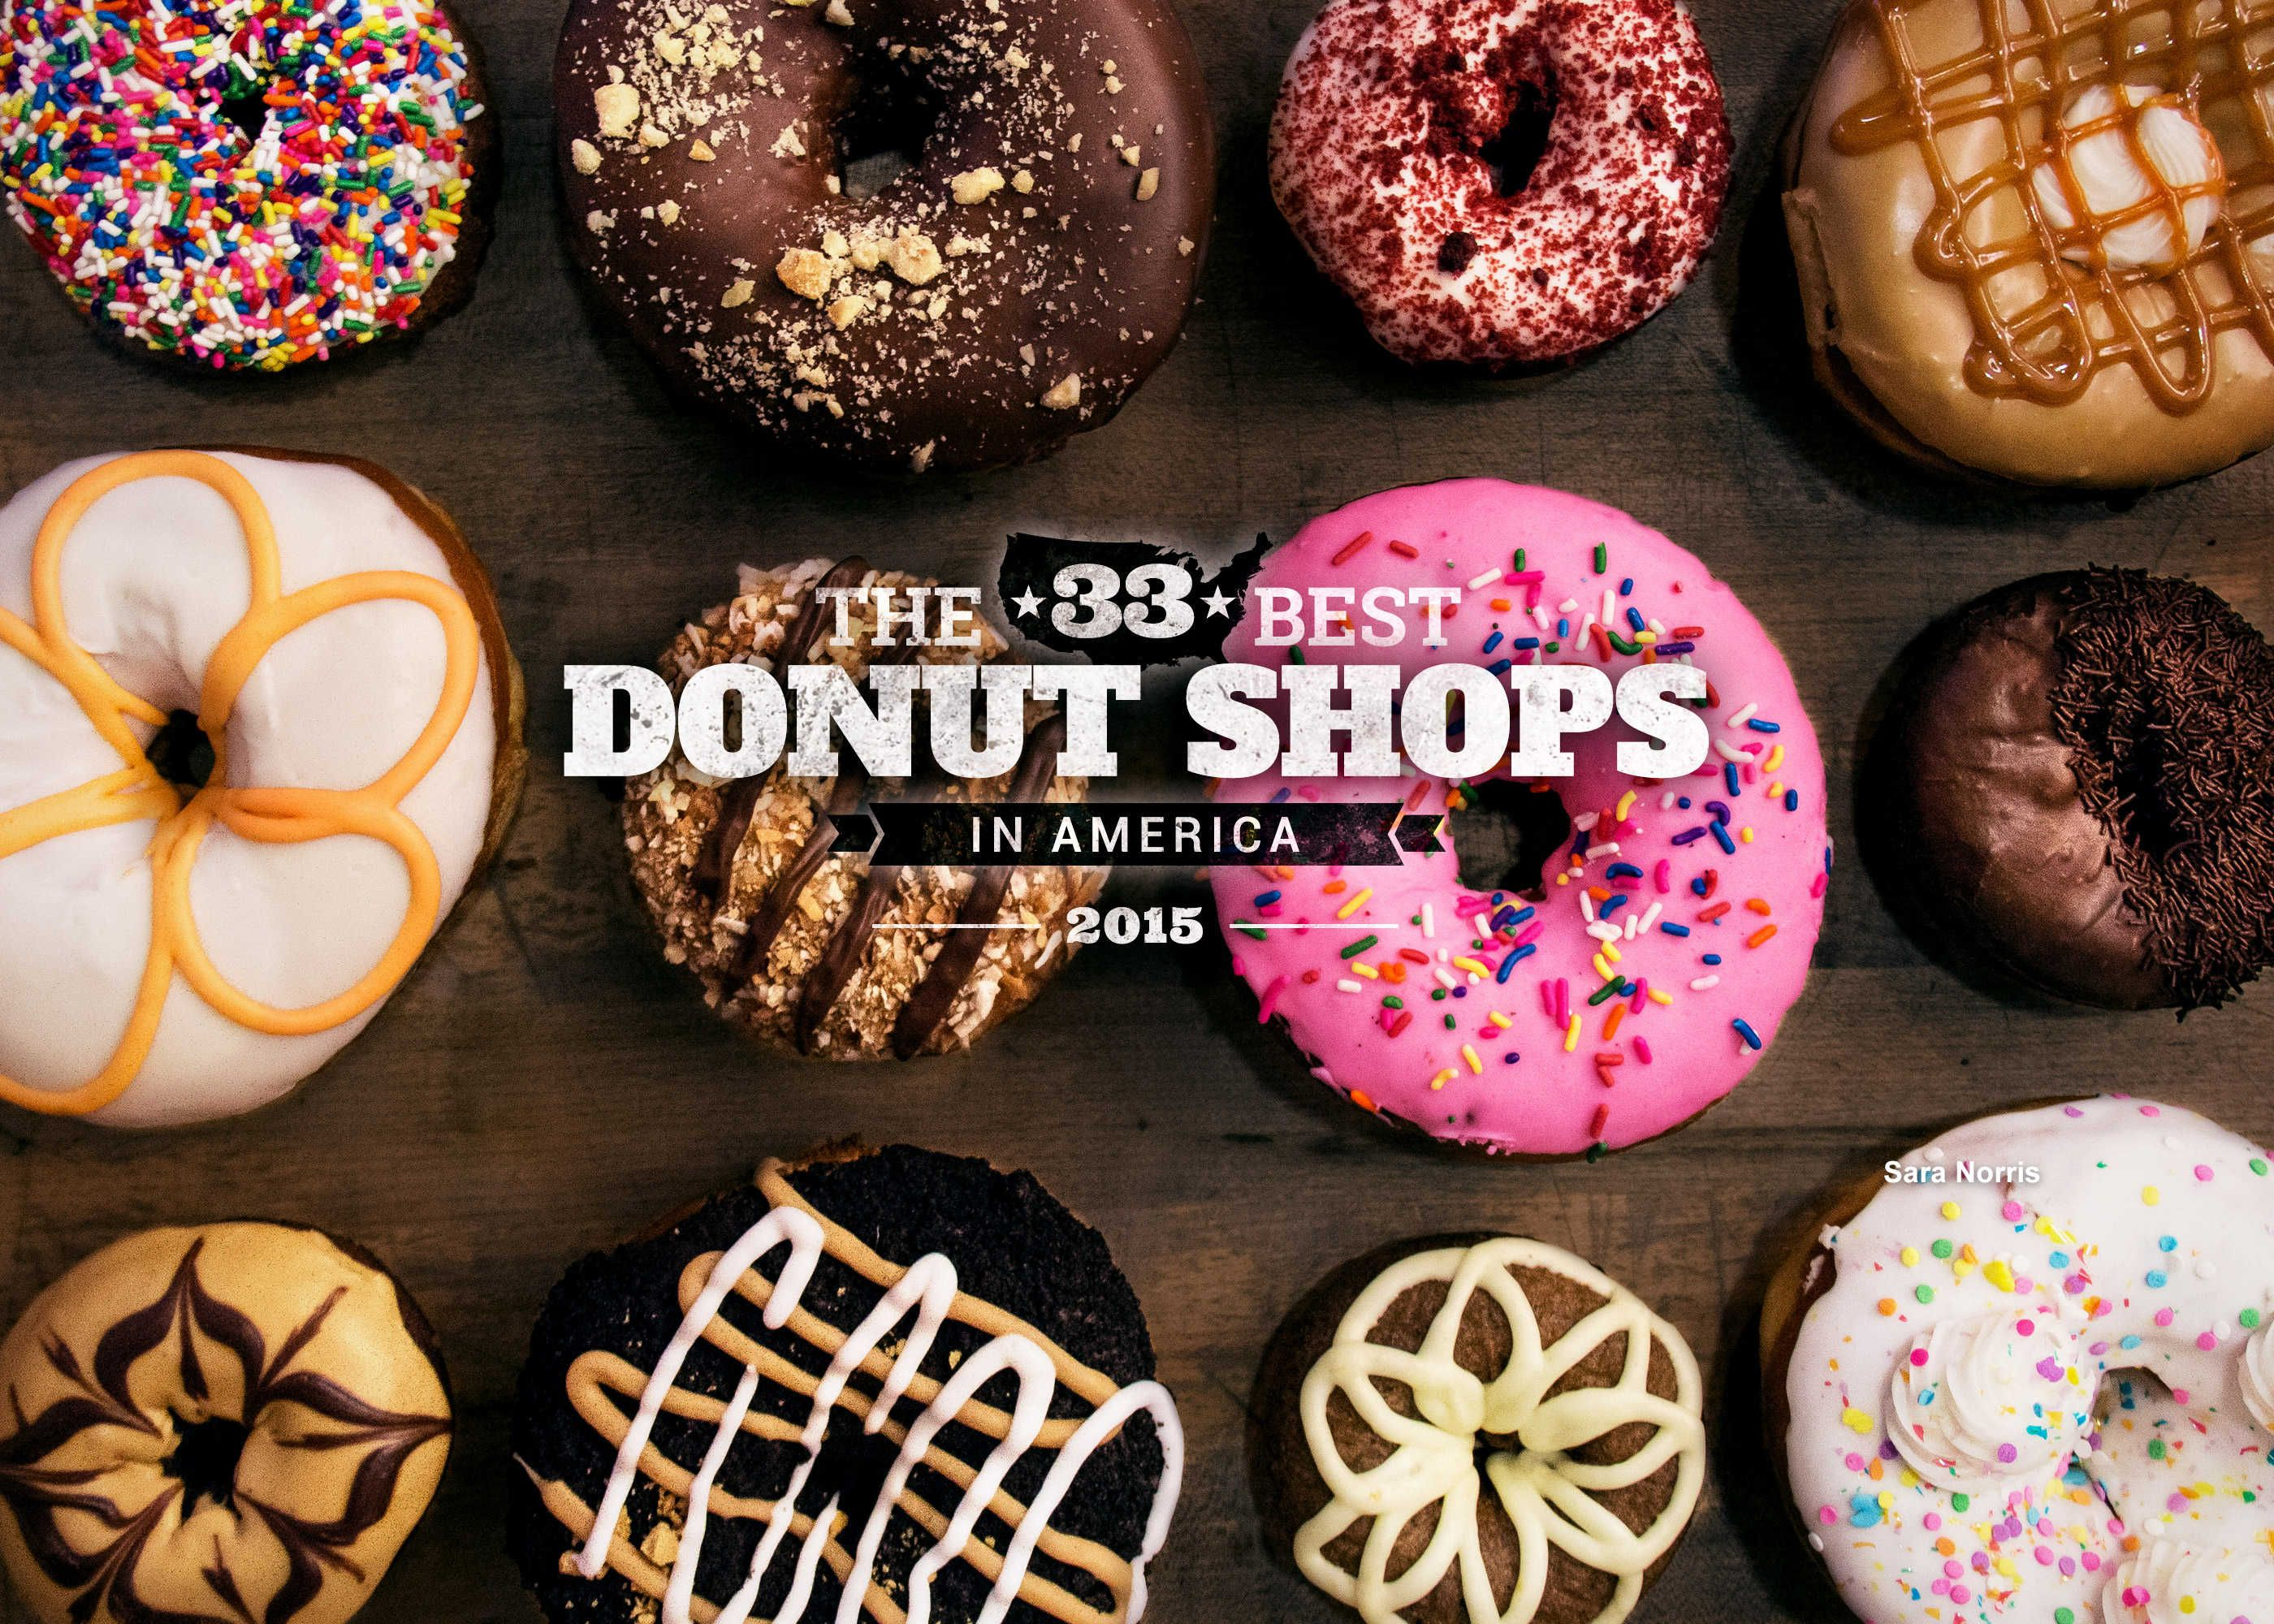 The 31 Best Donut Shops in America Donuts! Donut shop